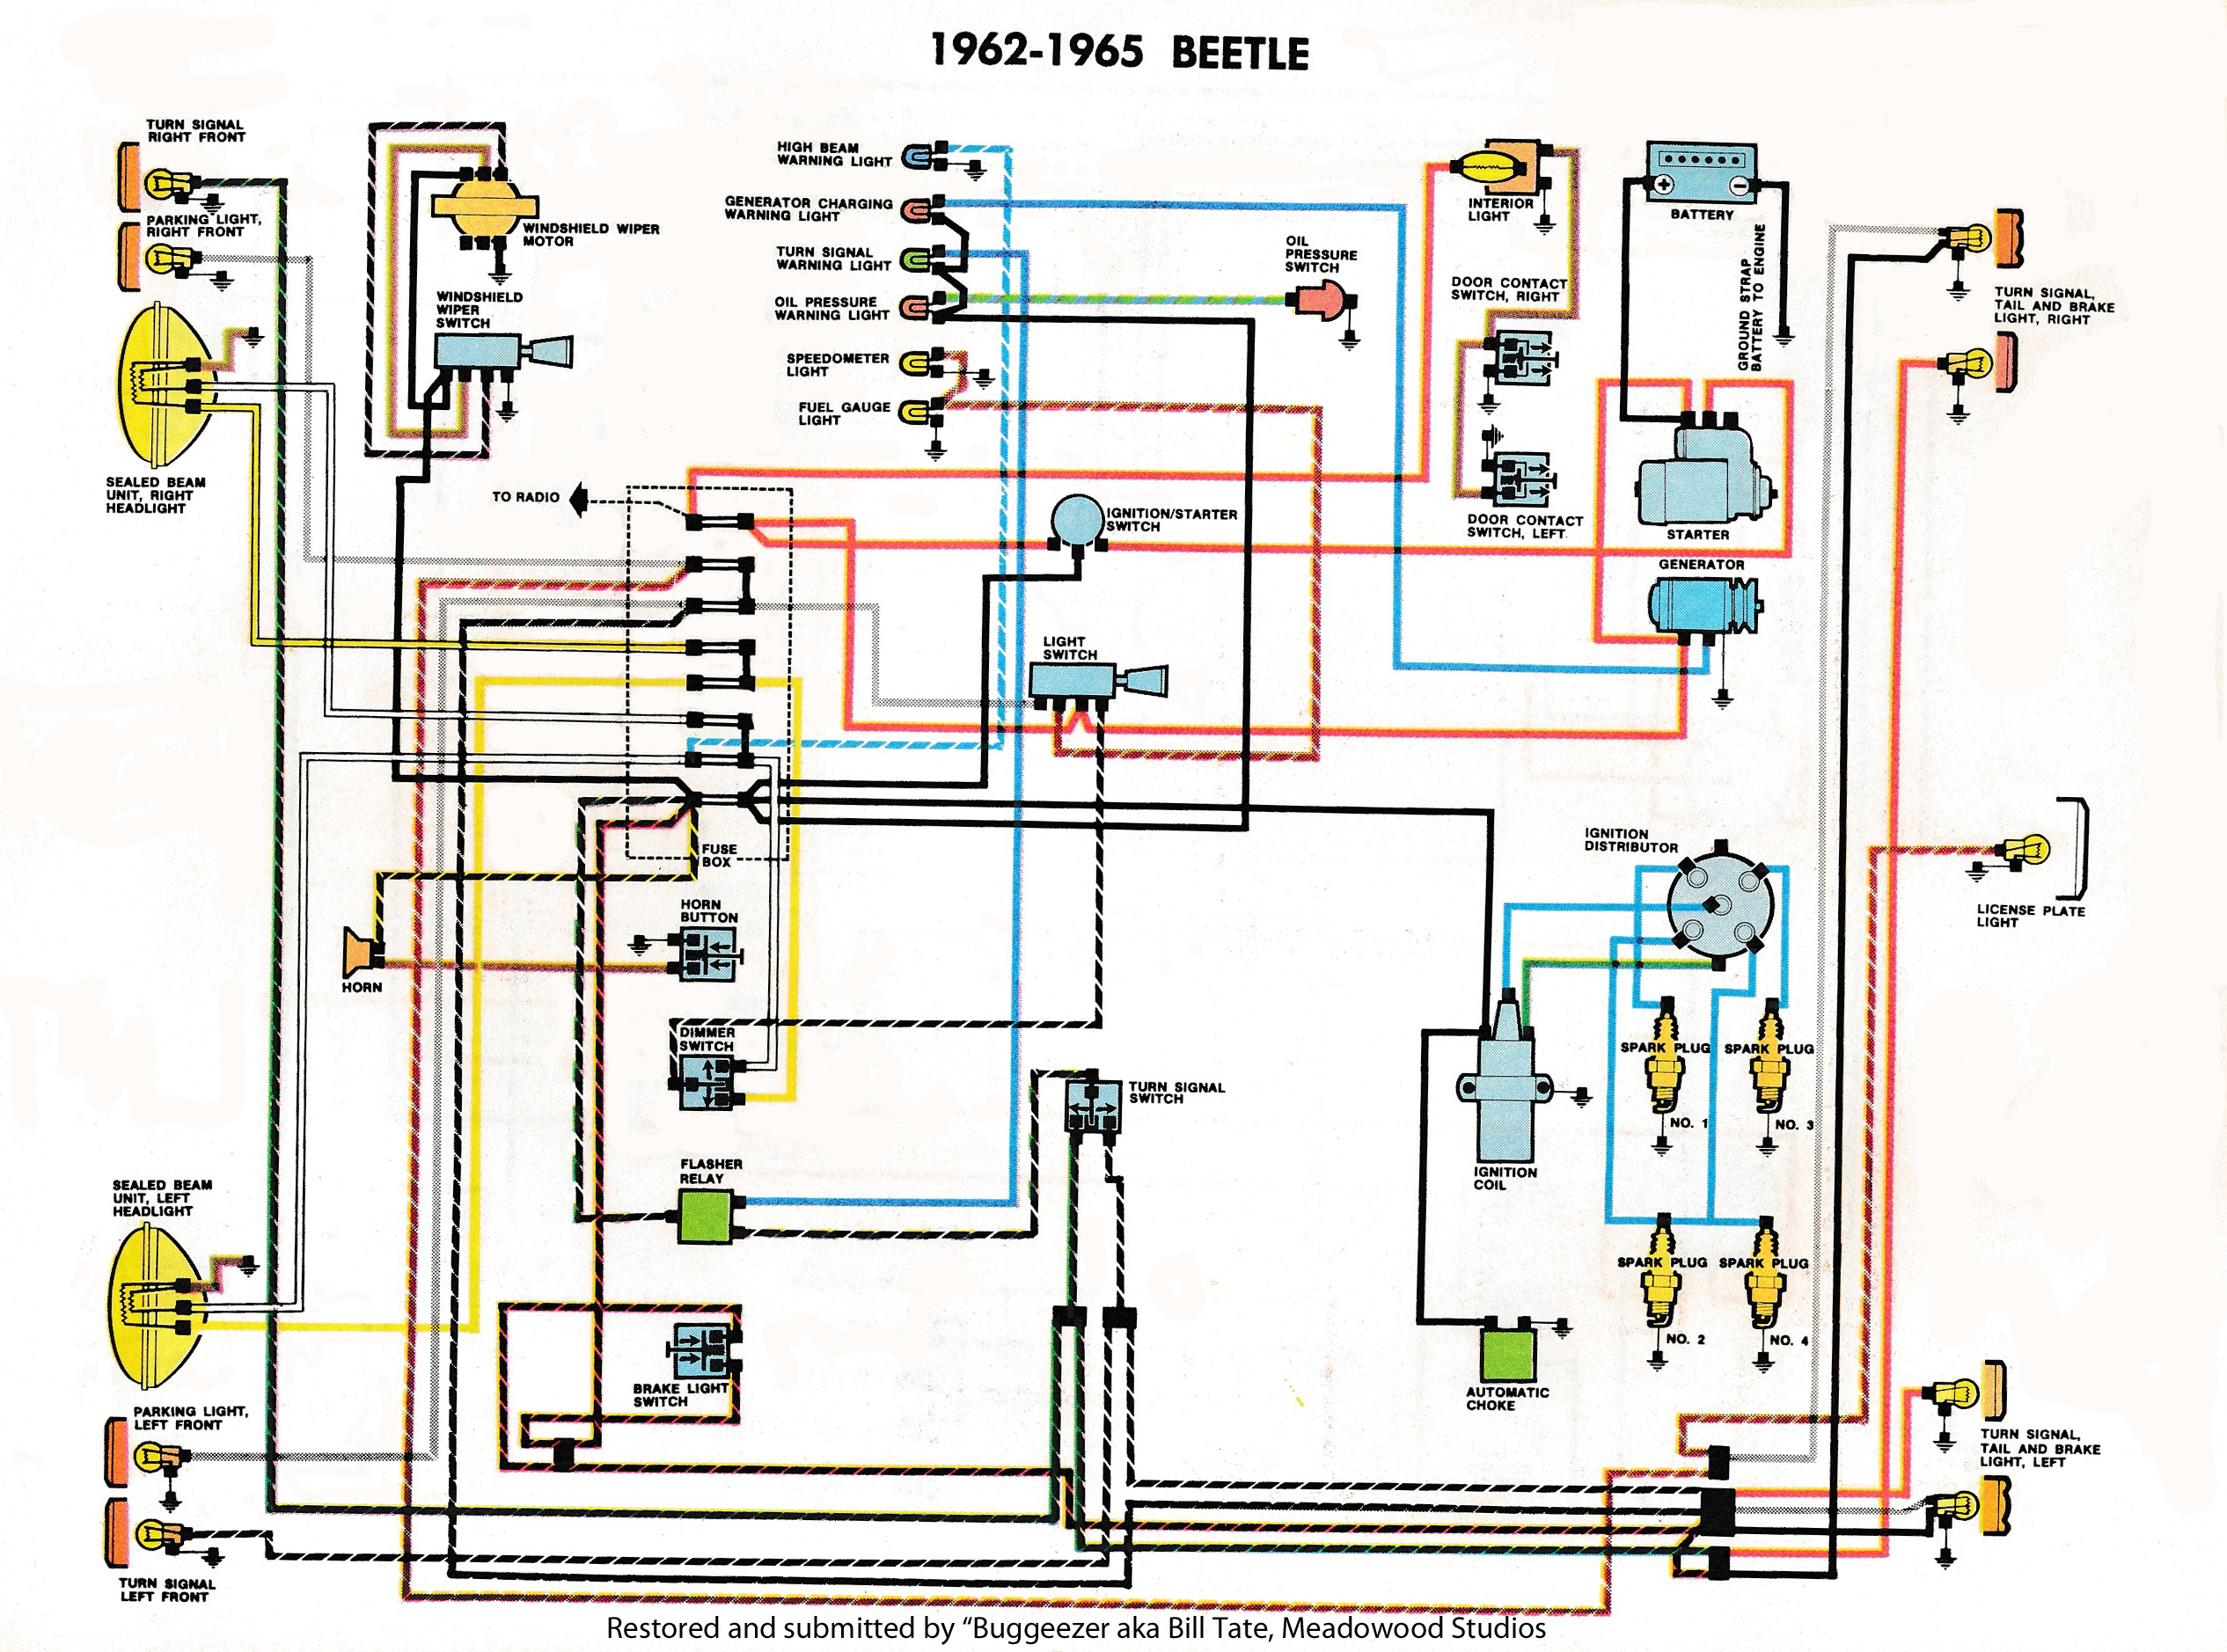 Beetle_1962 65_Clymers thesamba com type 1 wiring diagrams 1973 vw beetle fuse box diagram at crackthecode.co